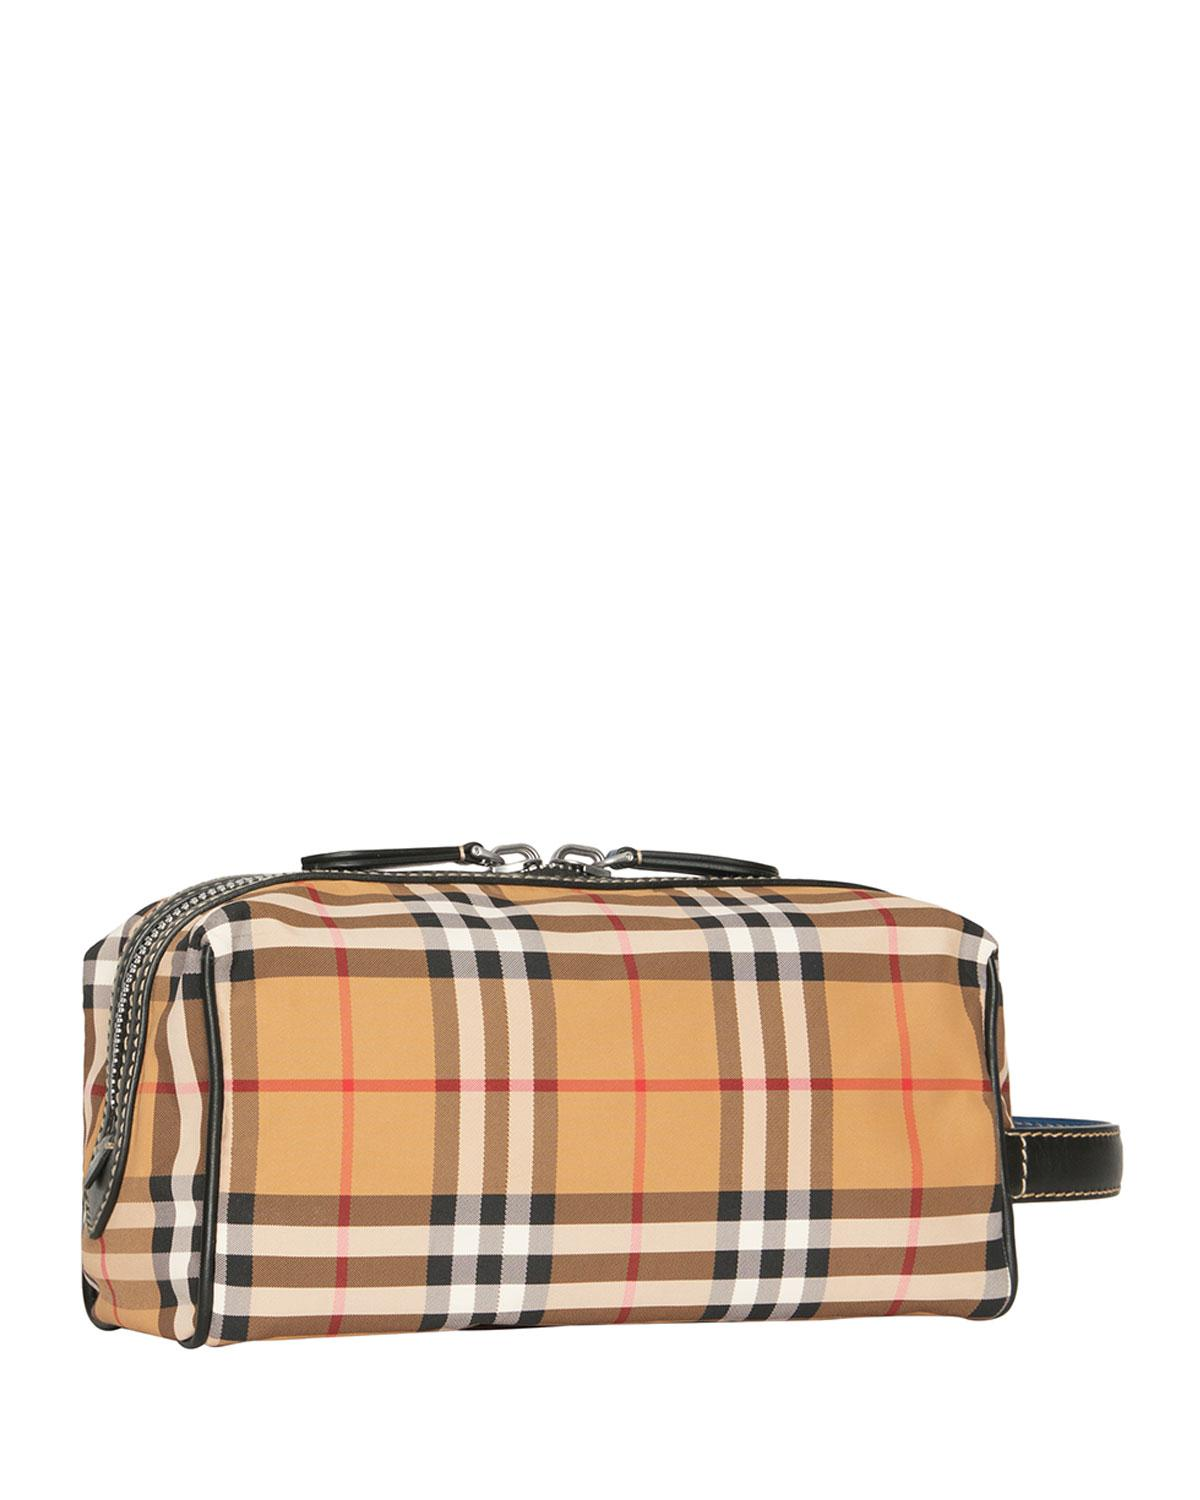 bec99ce1981e Lyst Burberry Men S Vintage Check Nylon Toiletry Bag In Yellow For